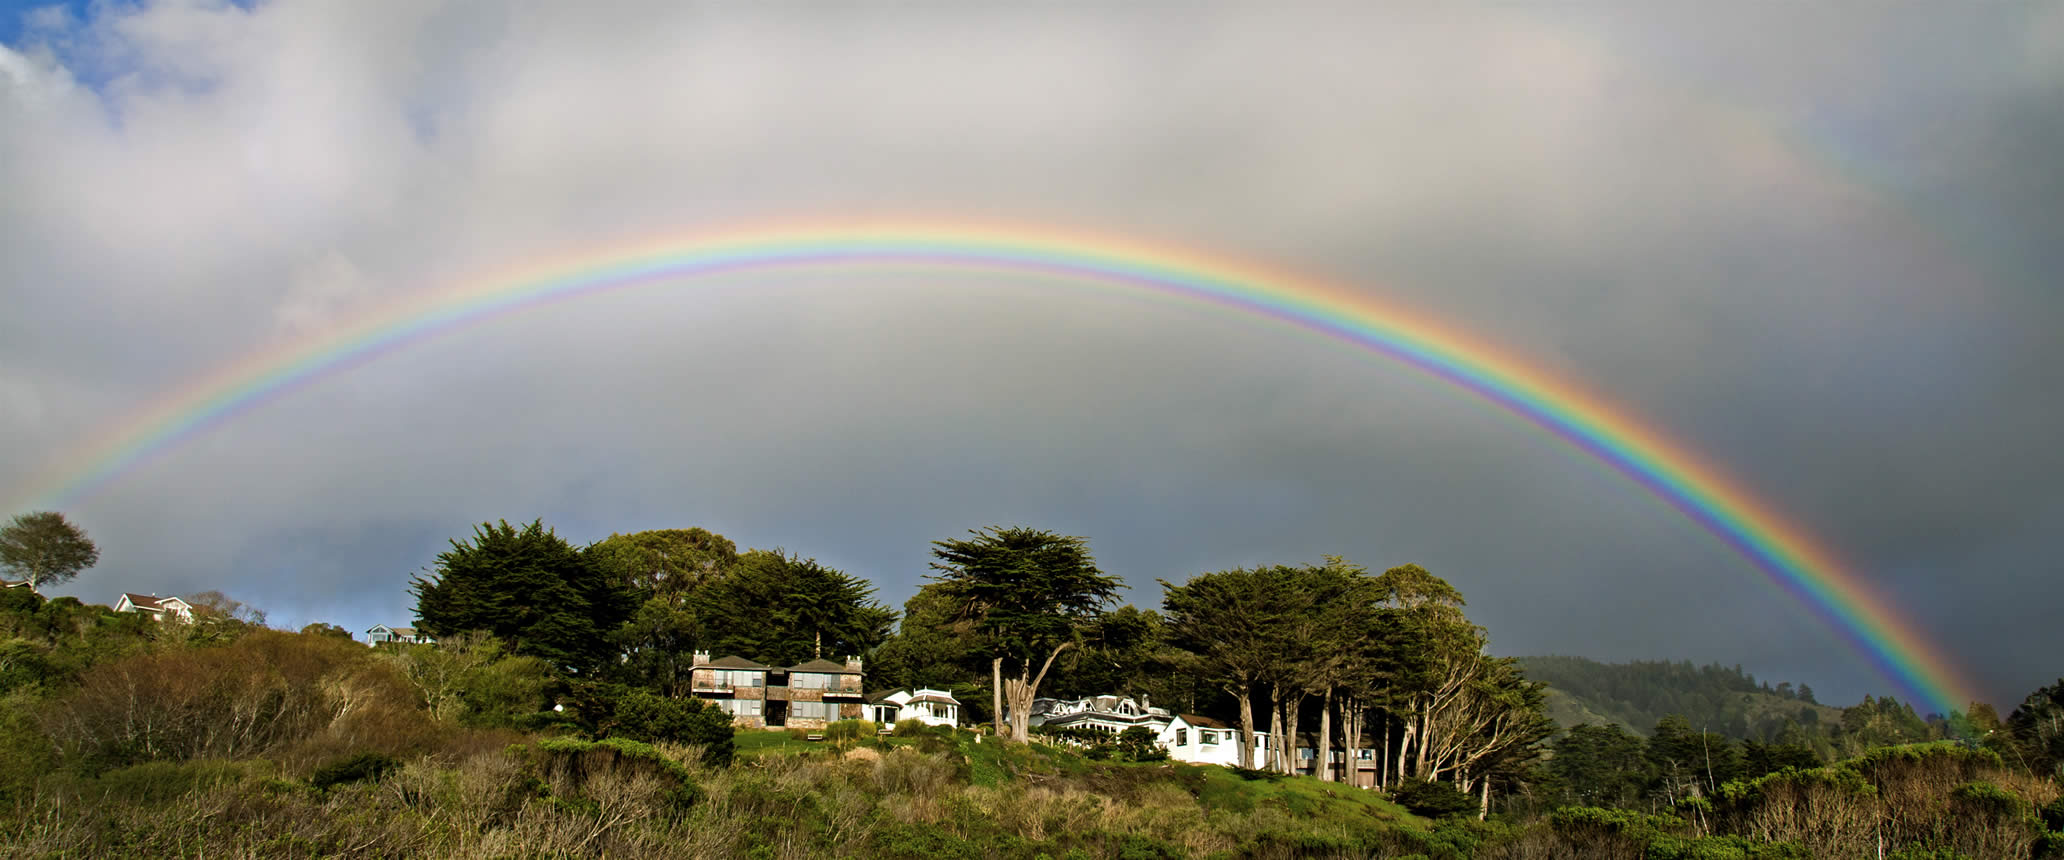 rainbow over elk cove inn on the mendocino coast